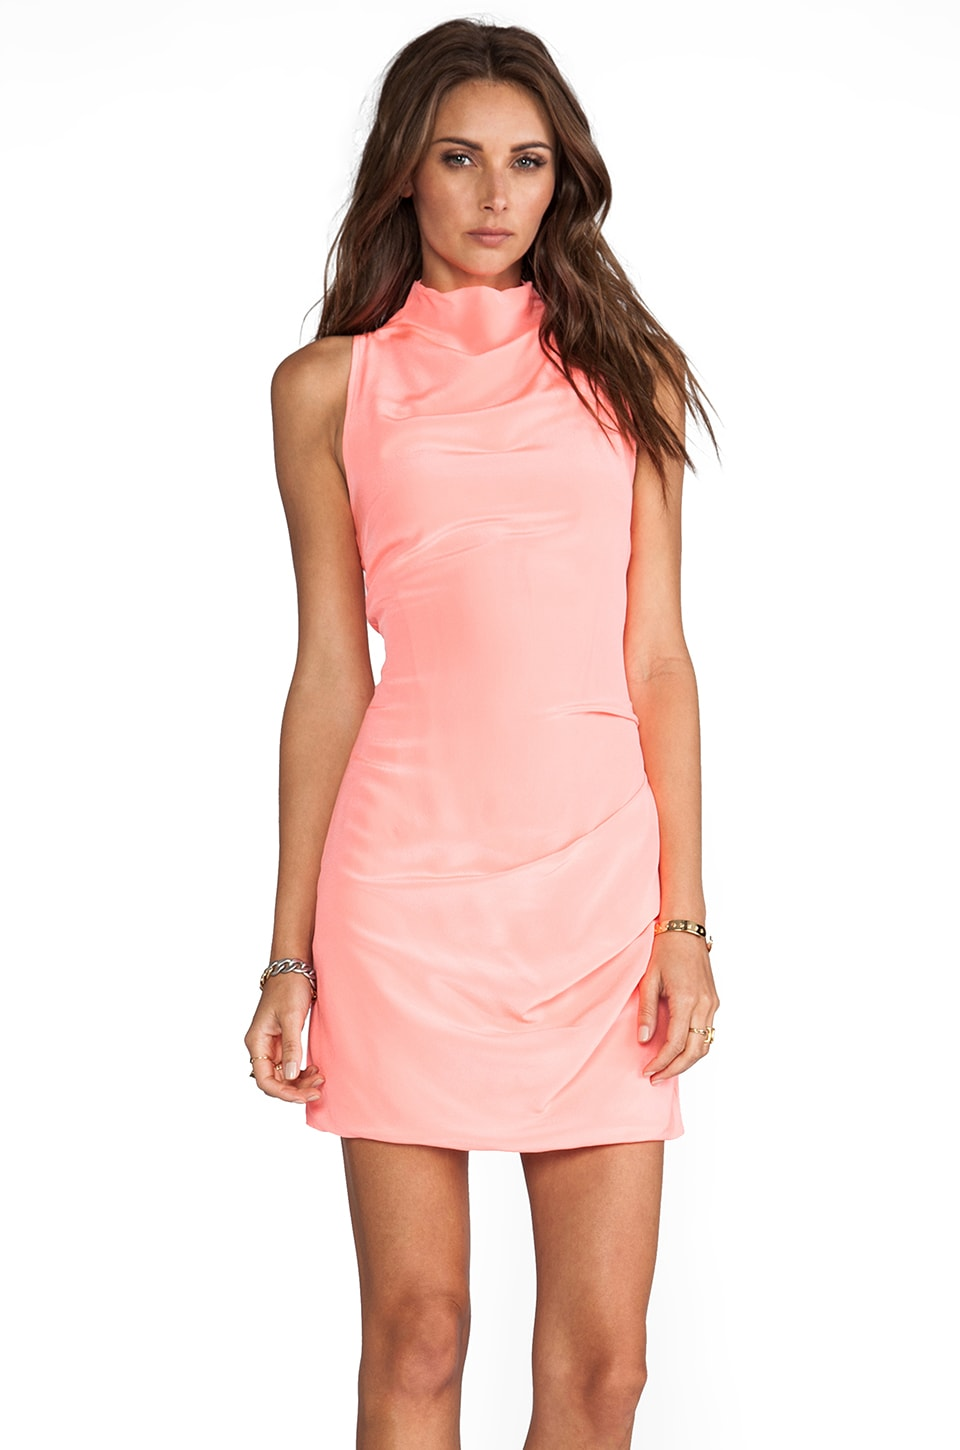 Maurie & Eve Breathless Dress in Neon Watermelon